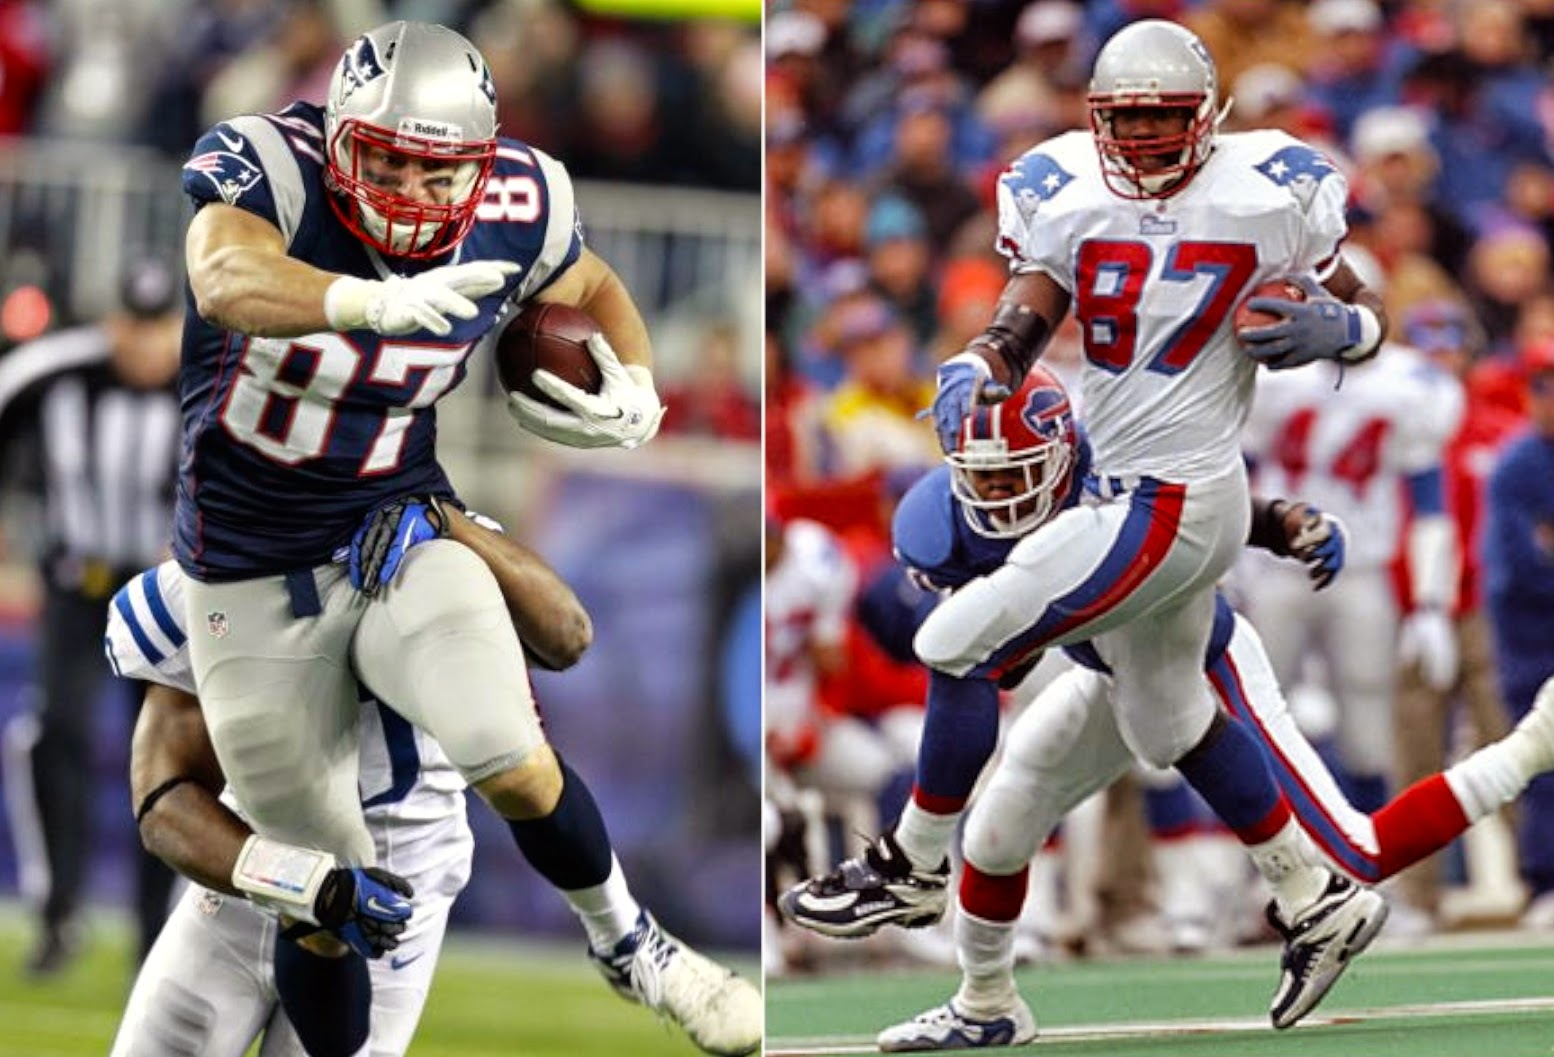 Ben Coates Rob Gronkowski vs Ben Coates give me Coates any day